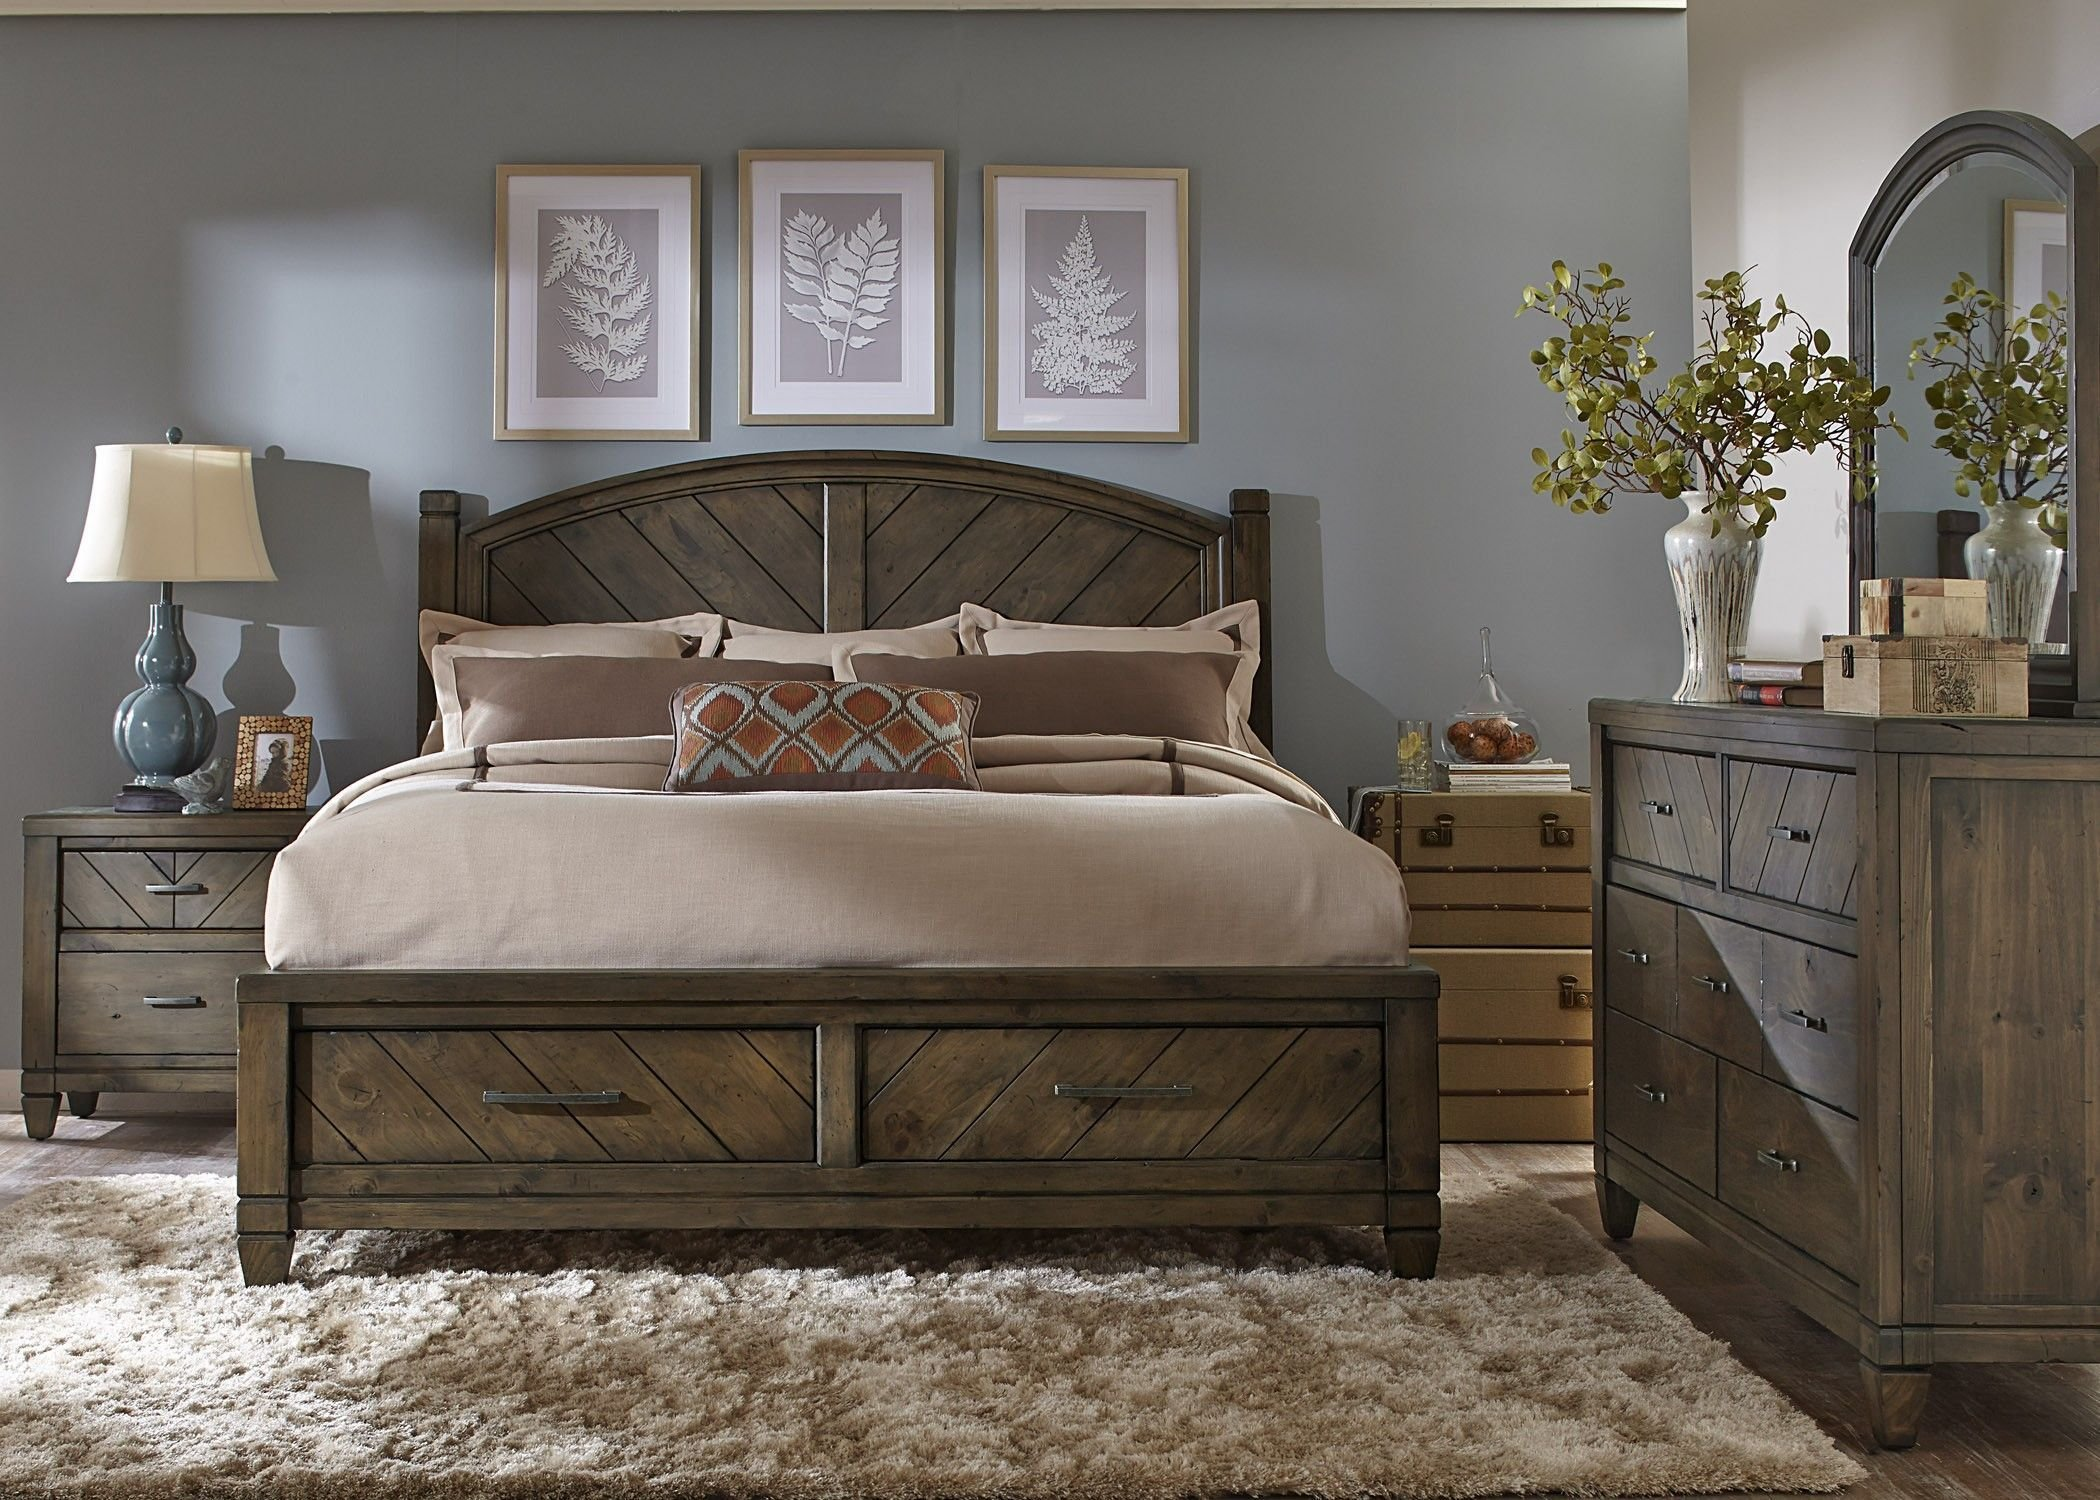 Best Modern Country Bedroom Set Bedroom Pinterest Country Bedroom Sets And Modern Country Bedrooms With Pictures